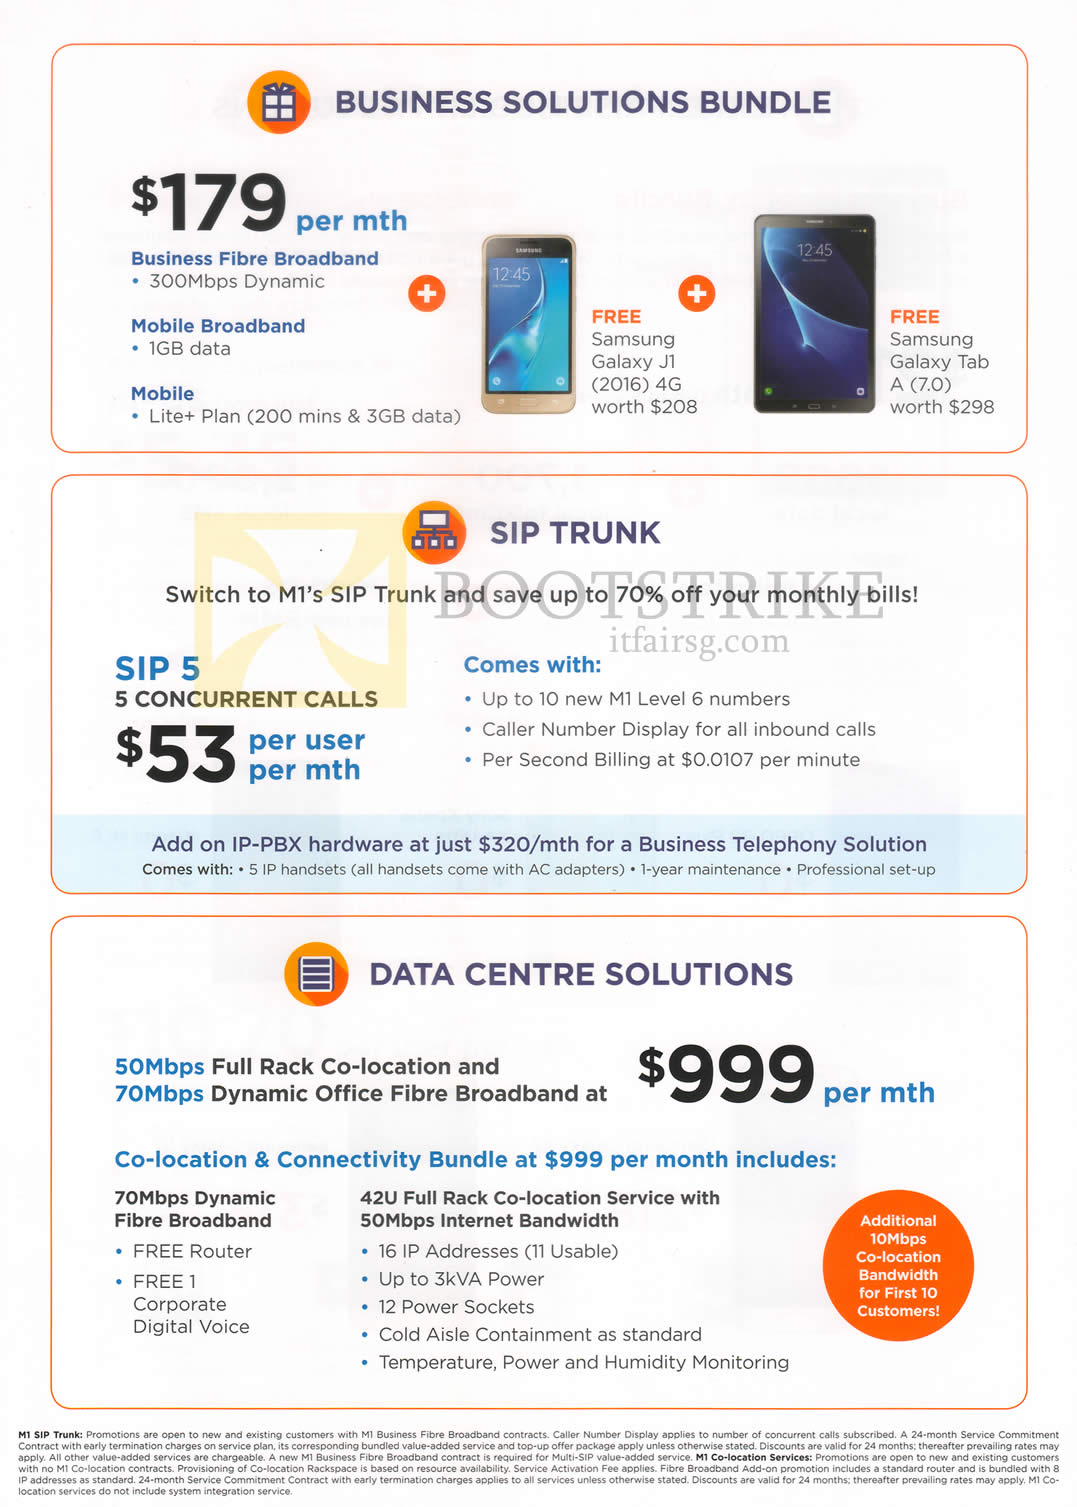 COMEX 2016 price list image brochure of M1 Business Solutions Bundle, SIP Trunk, Data Centre Solutions, Free Samsung Galaxy J1 2016, Tab A 7